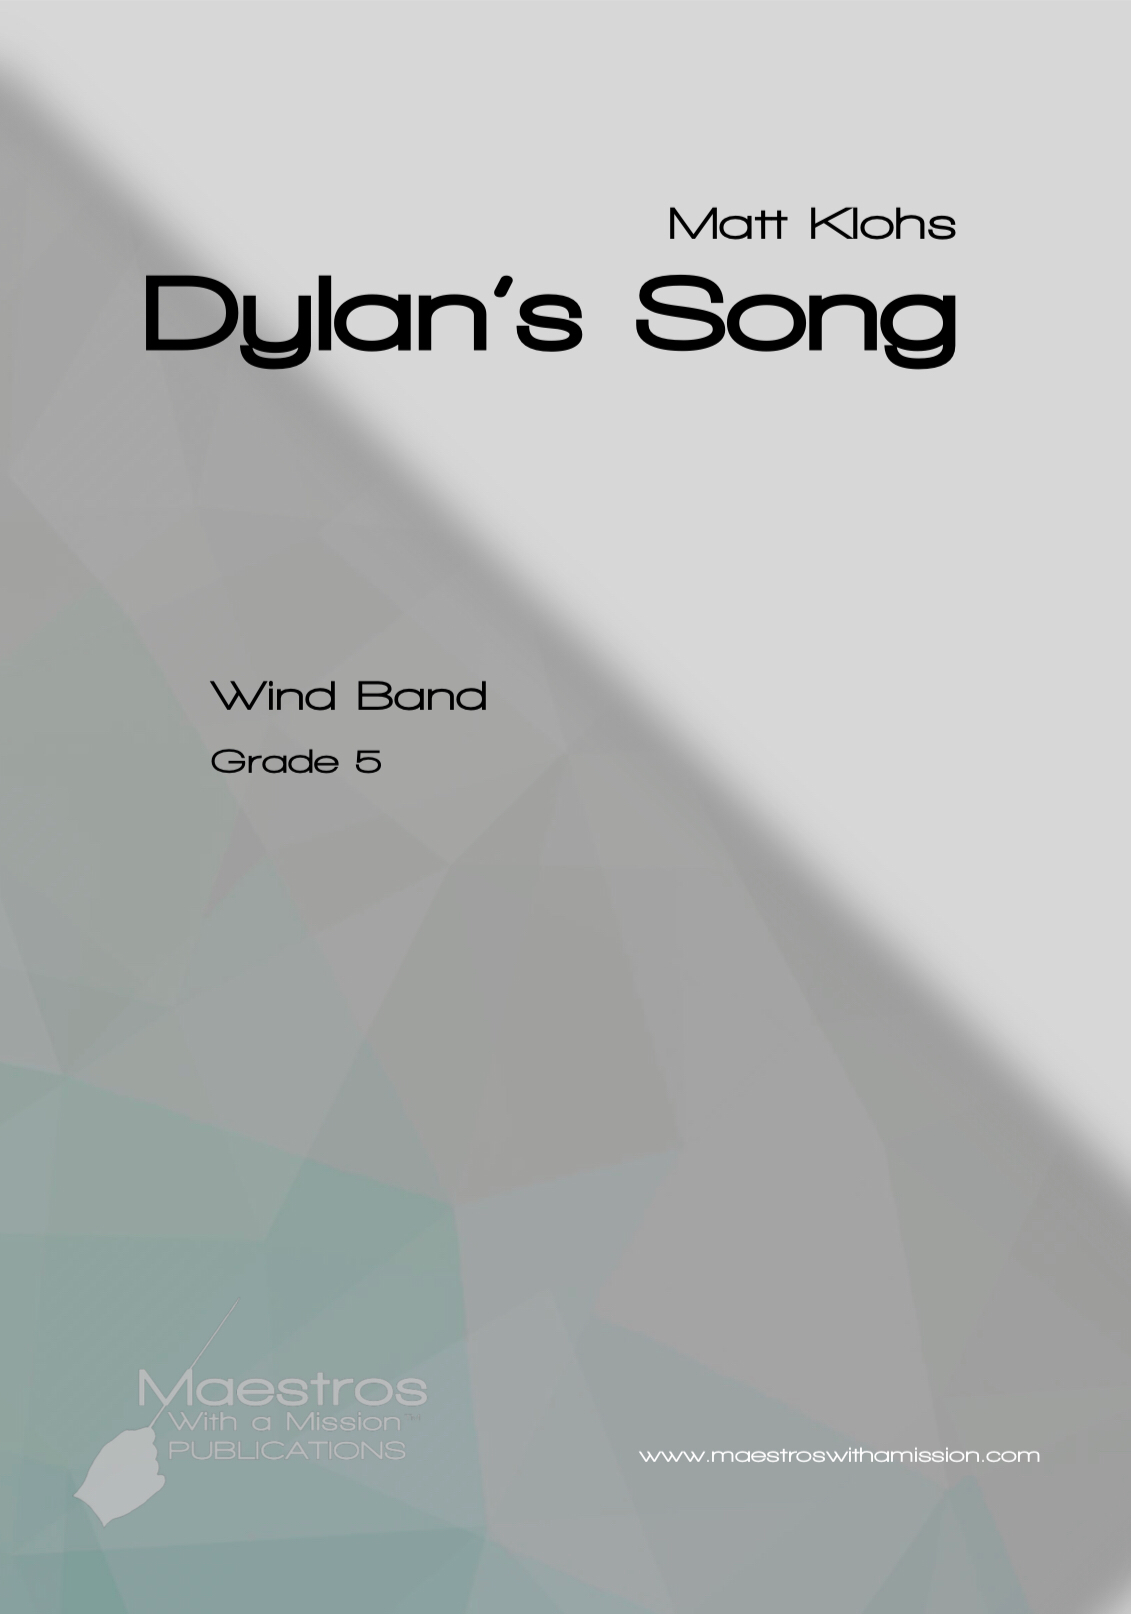 Dylan's Song by Matt Klohs